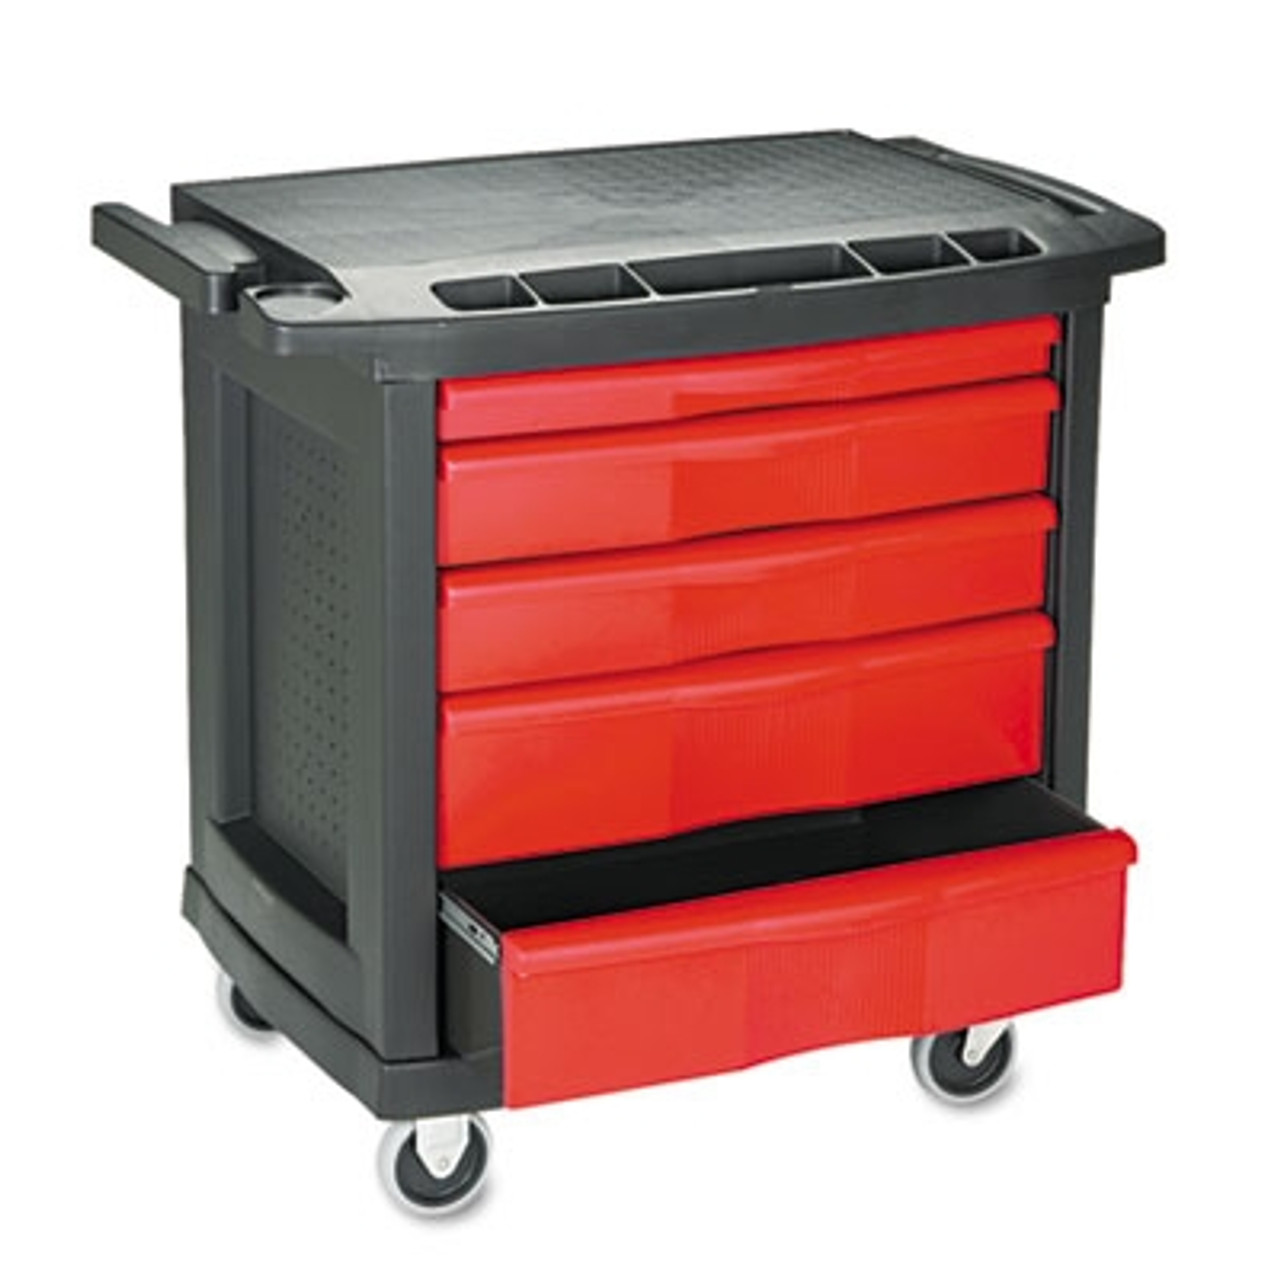 Rubbermaid Commercial Five-Drawer Mobile Workcenter, 32-1/2w x 20d x 33-1/2h, Black Plastic Top